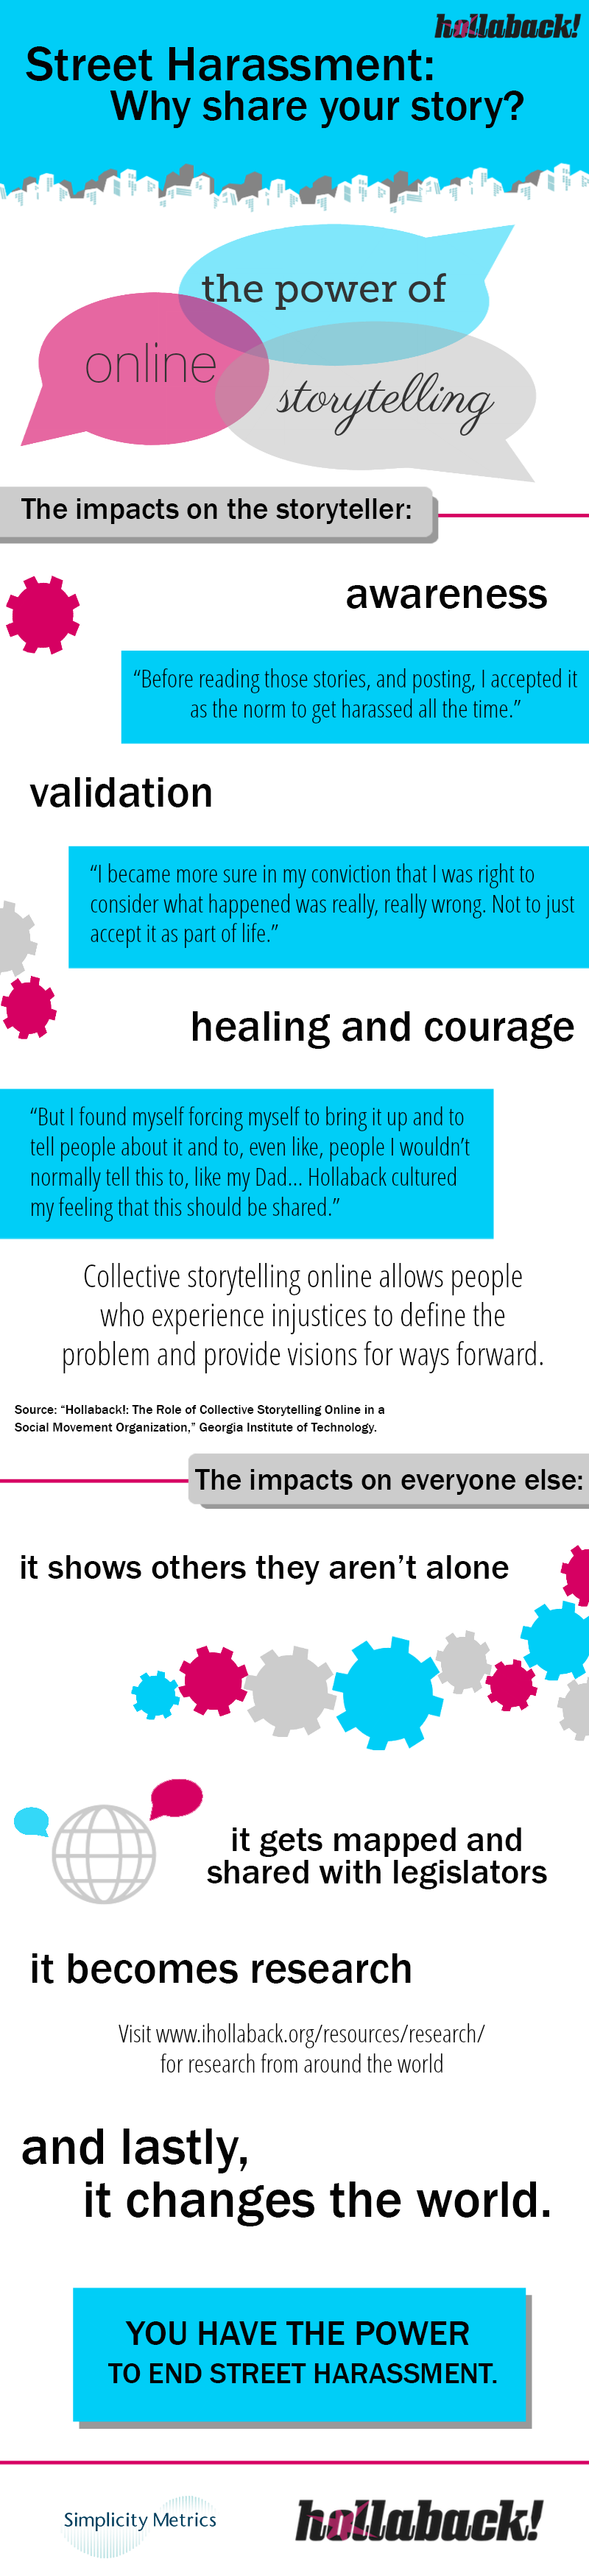 hollaback: Reasons to Share infographic